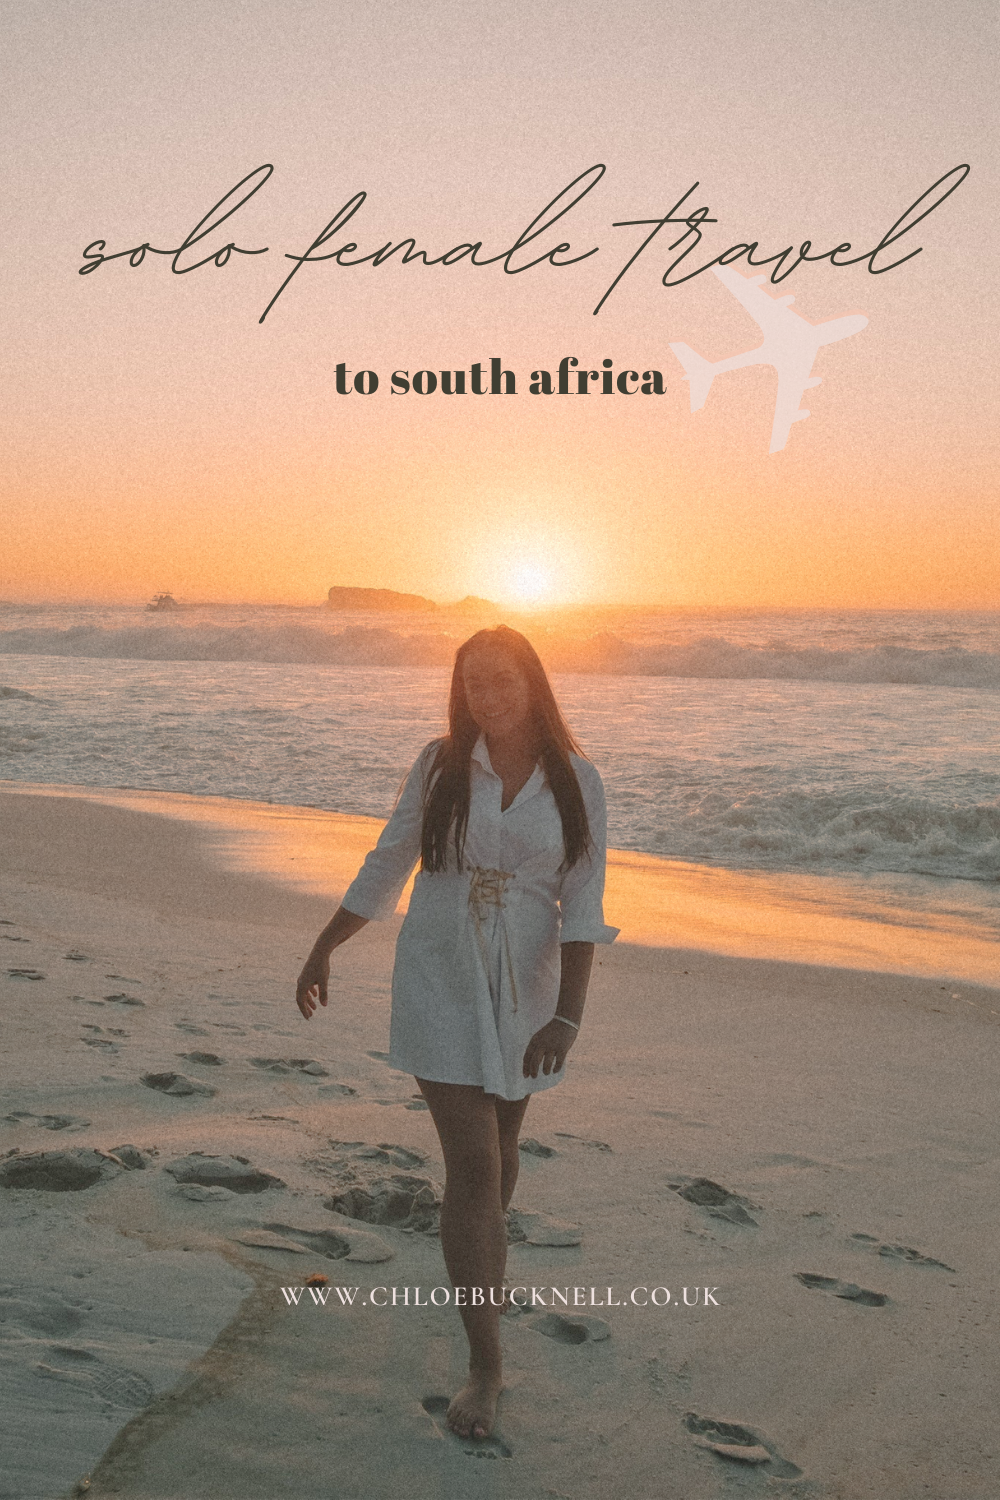 Considering travelling to South Africa on your own? DO IT